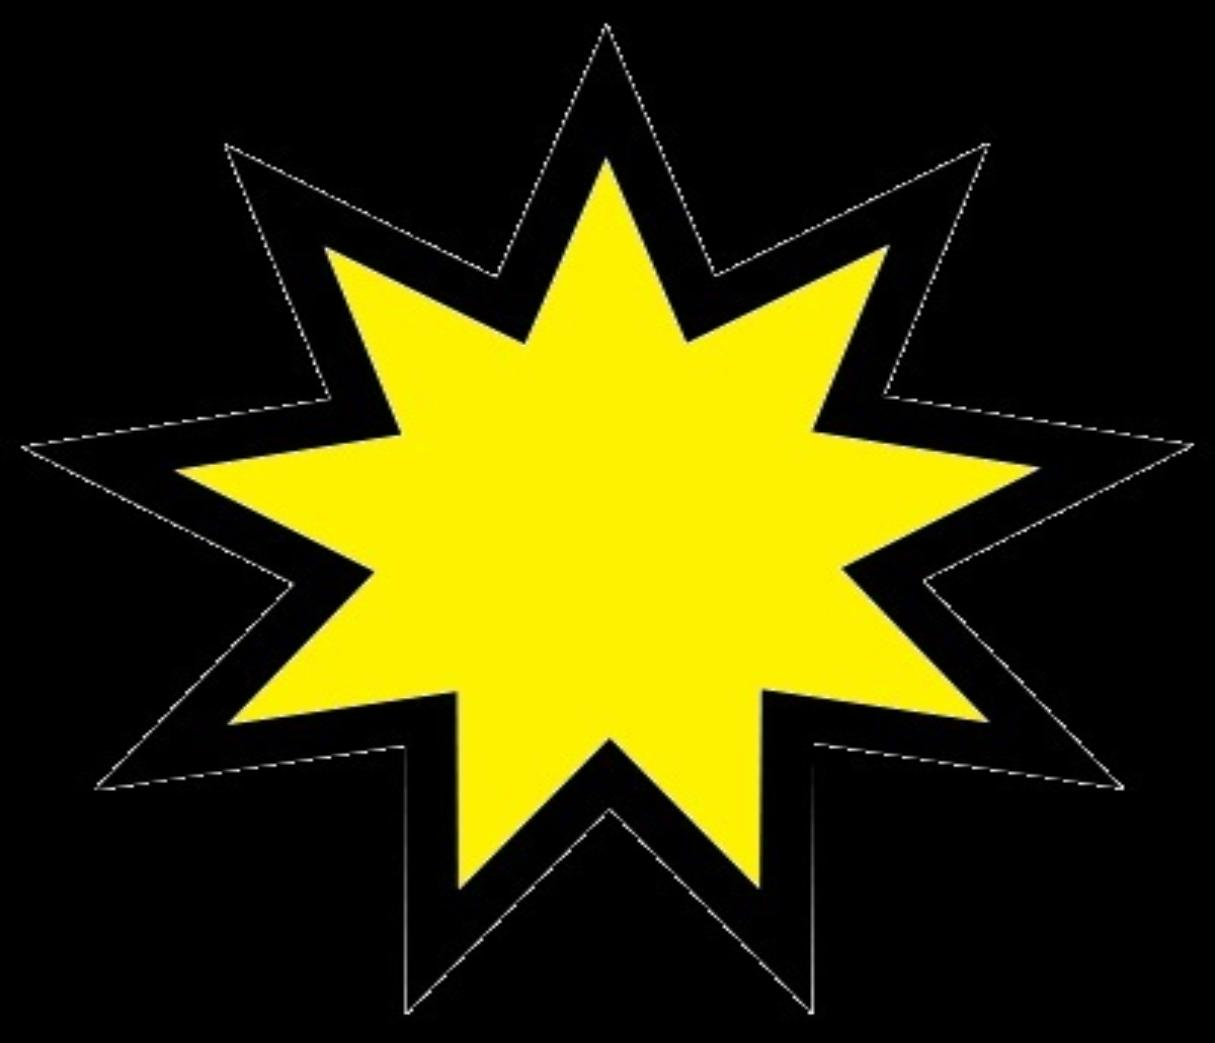 A dark and yellow nine star pointed at wisdomgame